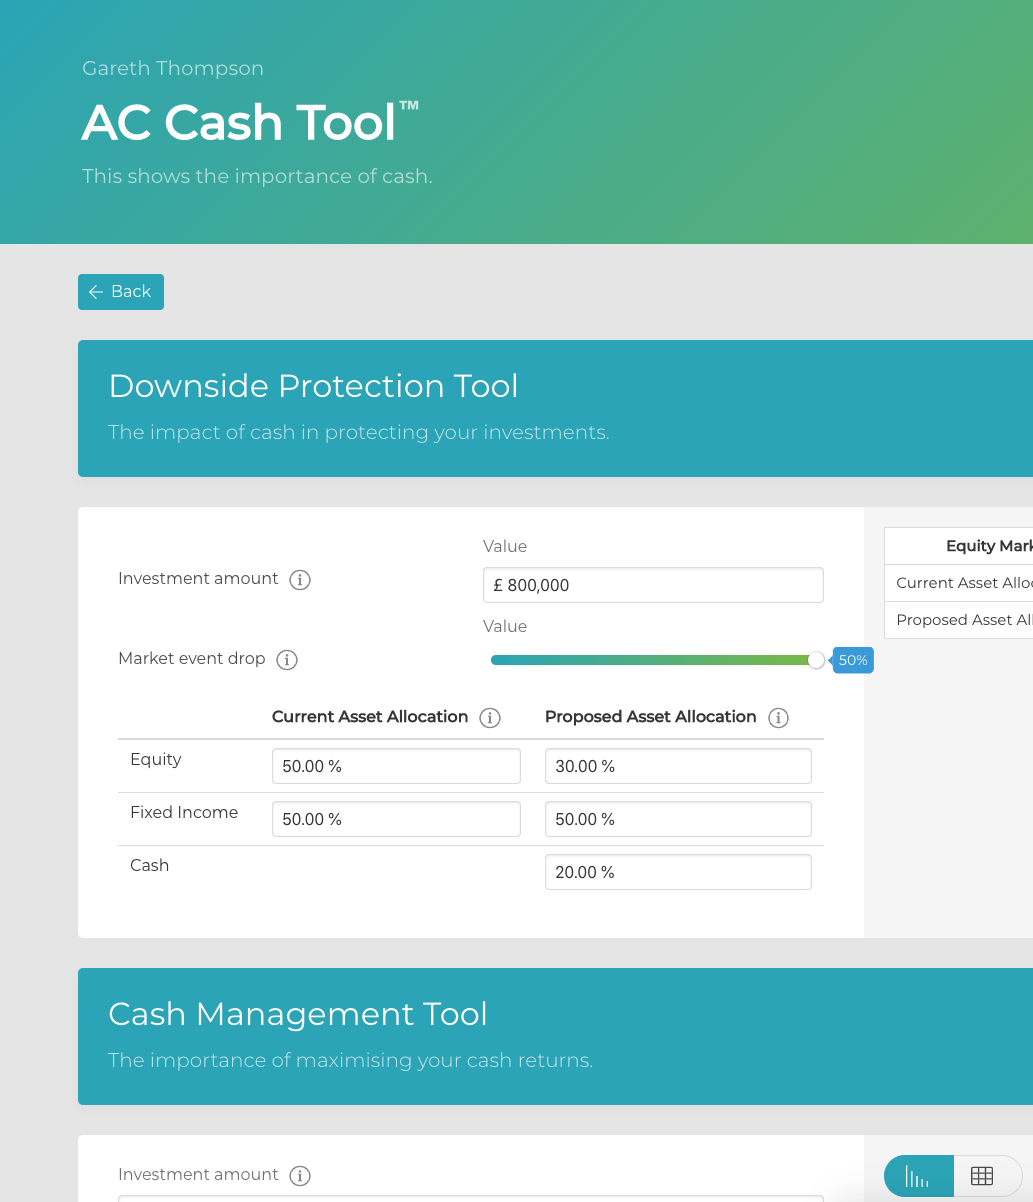 The Cash Management Tool